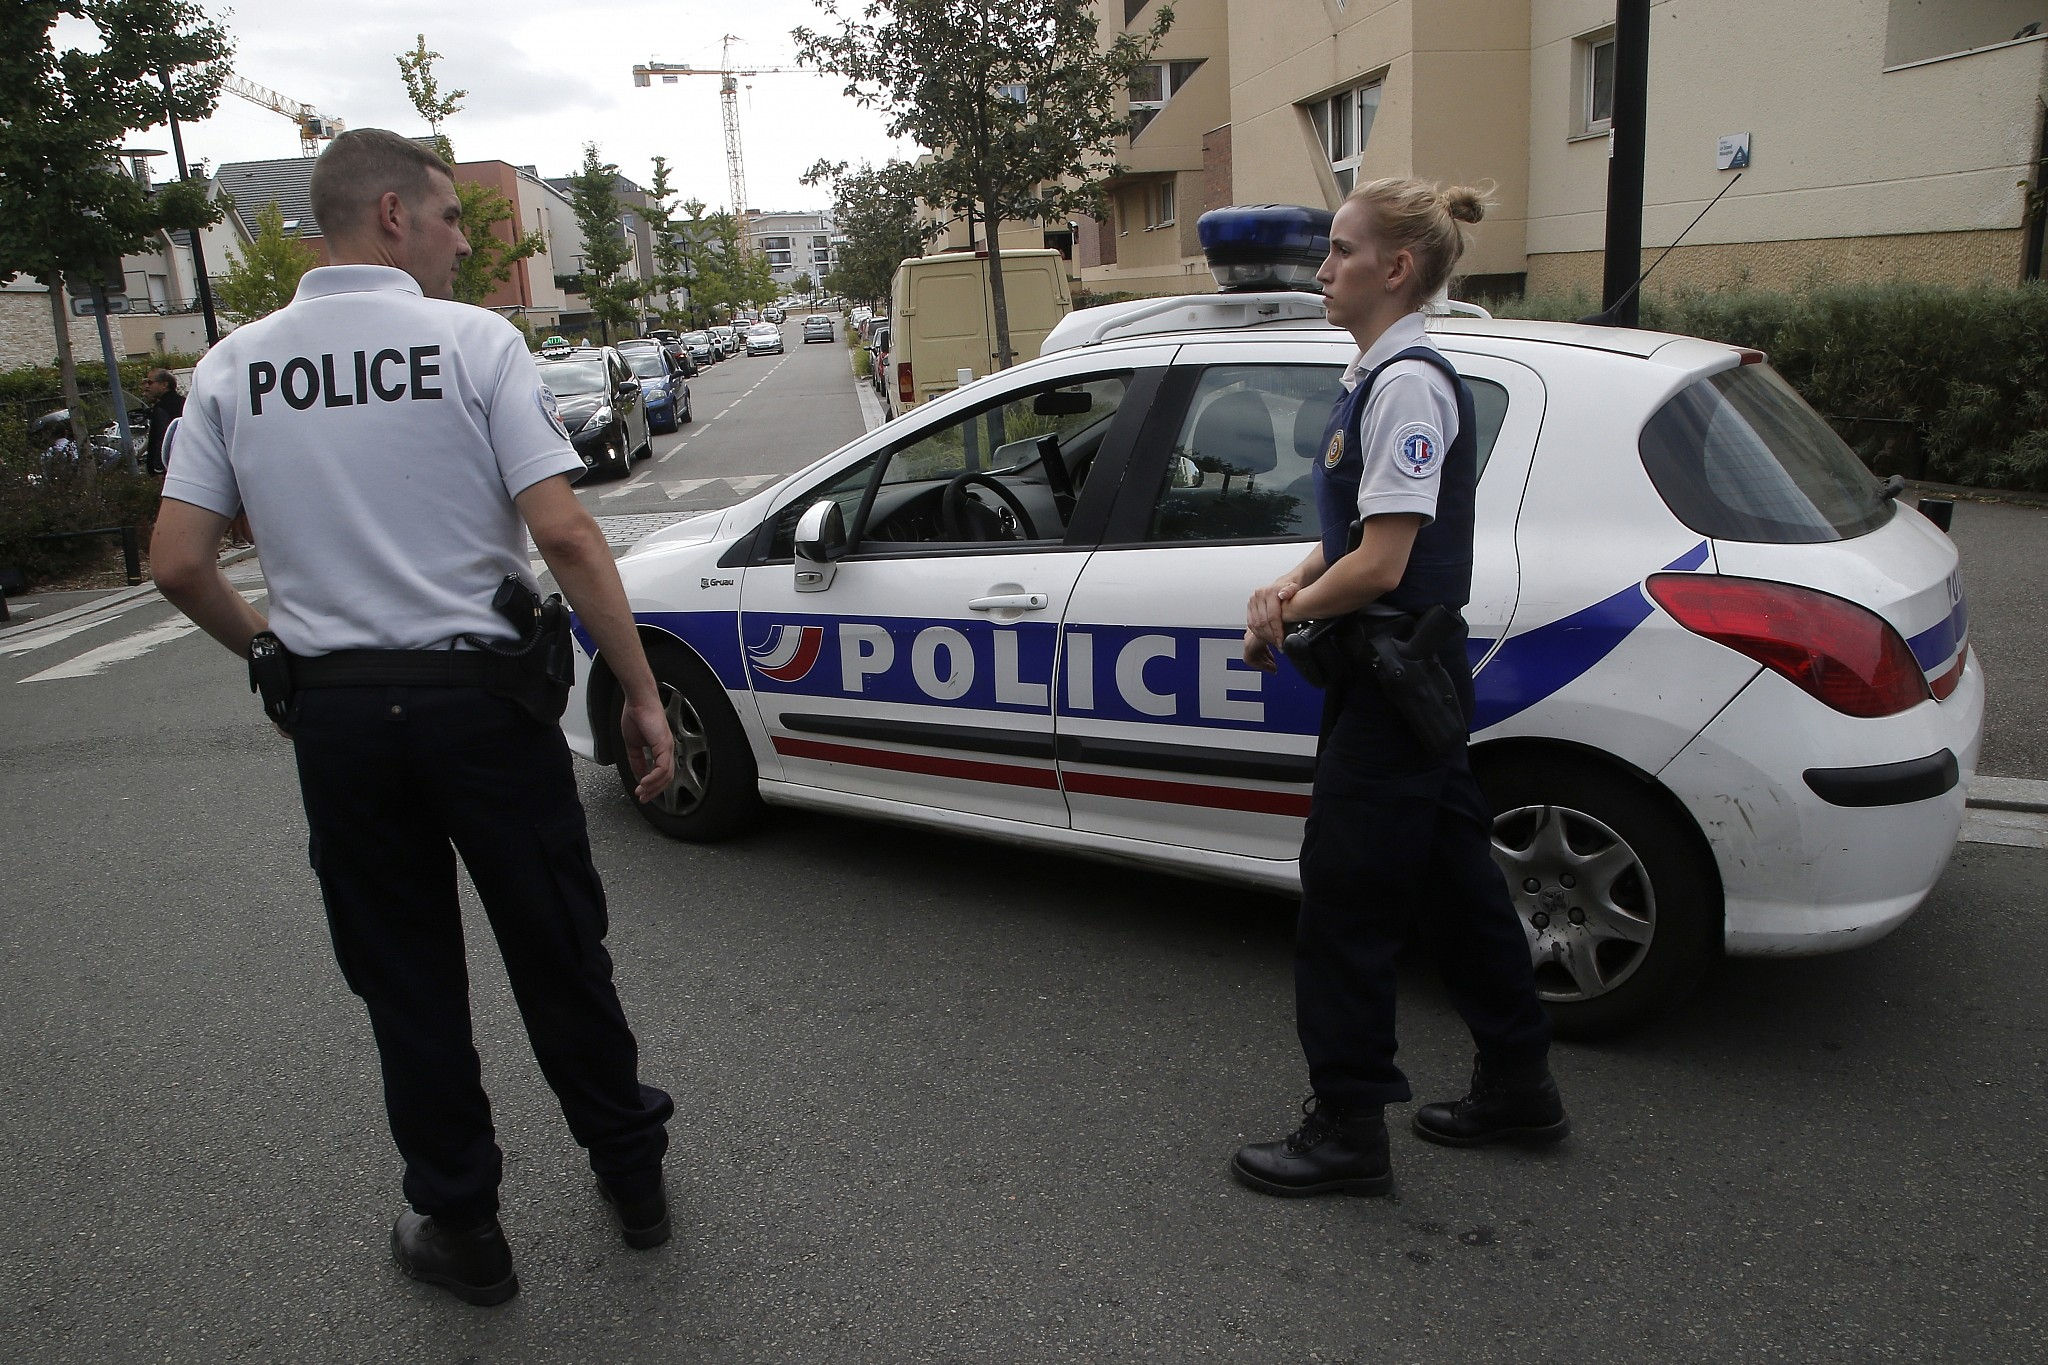 Two killed in knife attack in Paris suburb, ISIS claims responsibility